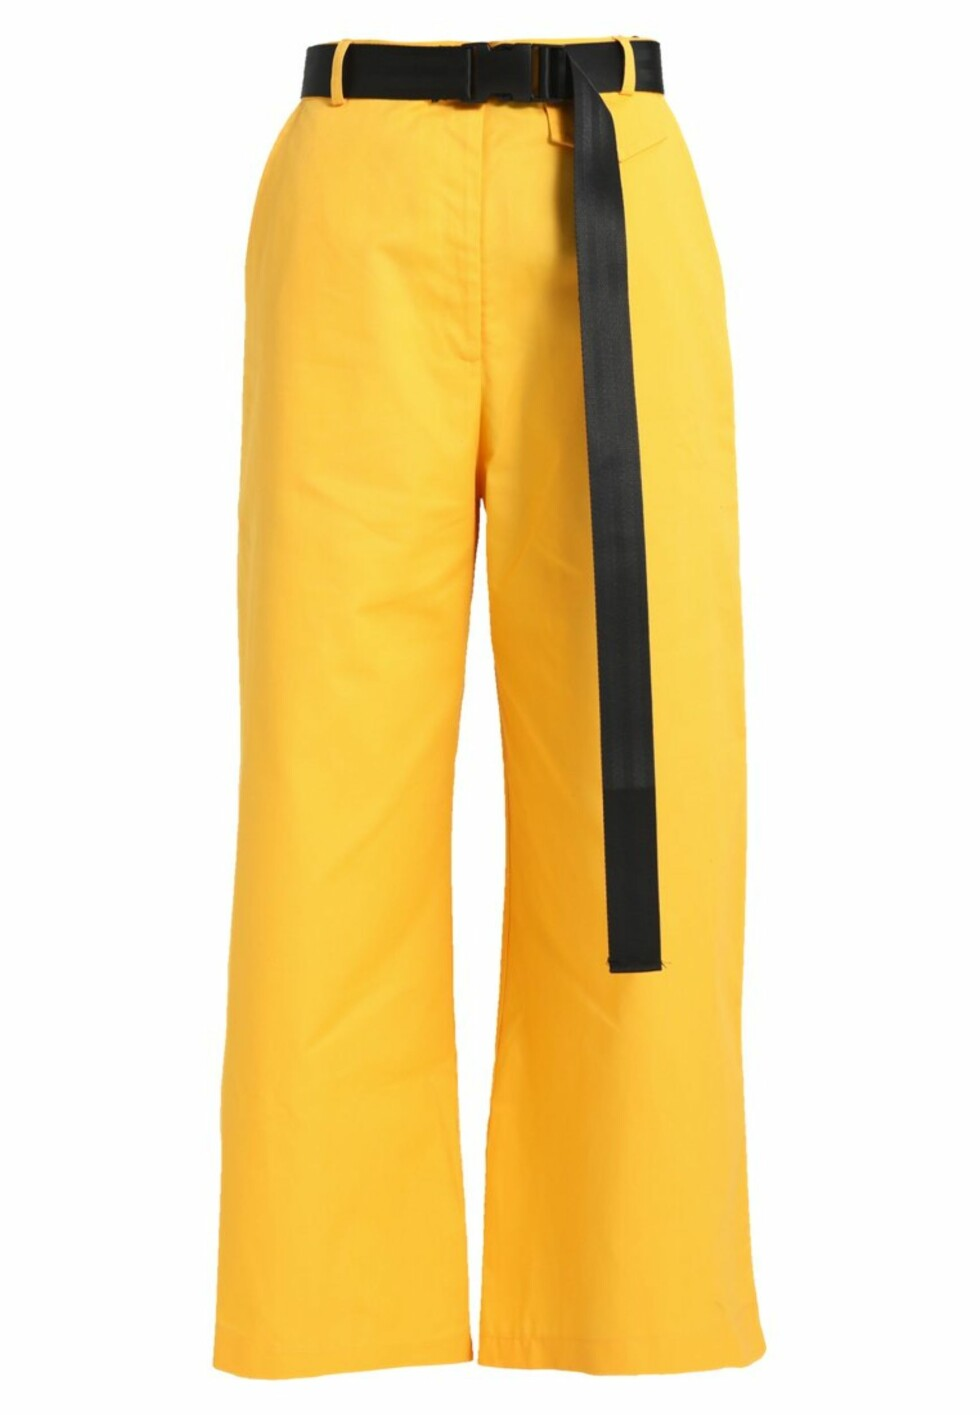 Bukse fra The Ragges Priest |499,-| https://www.zalando.no/the-ragged-priest-volume-pants-bukser-yellow-thj21a009-e11.html